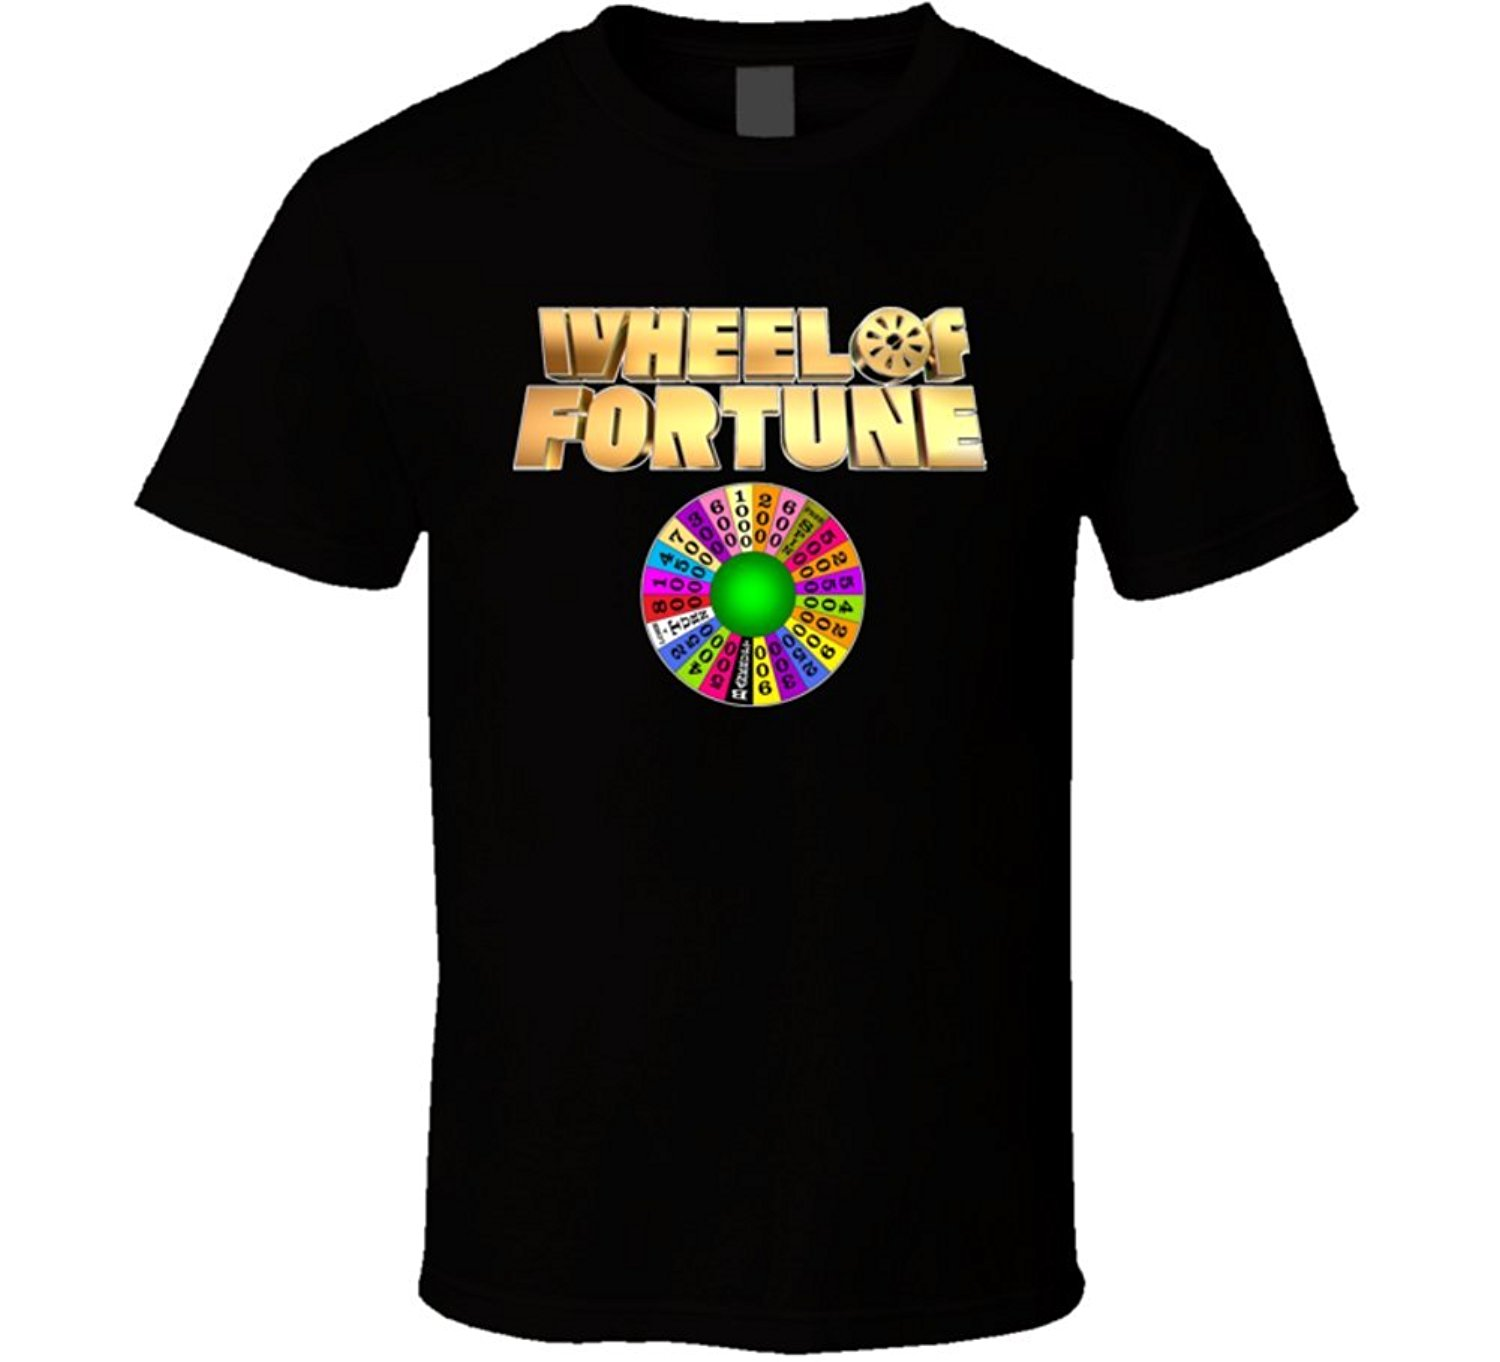 T-Shirt Bandit Wheel of Fortune TV Game Show Classic T Shirt